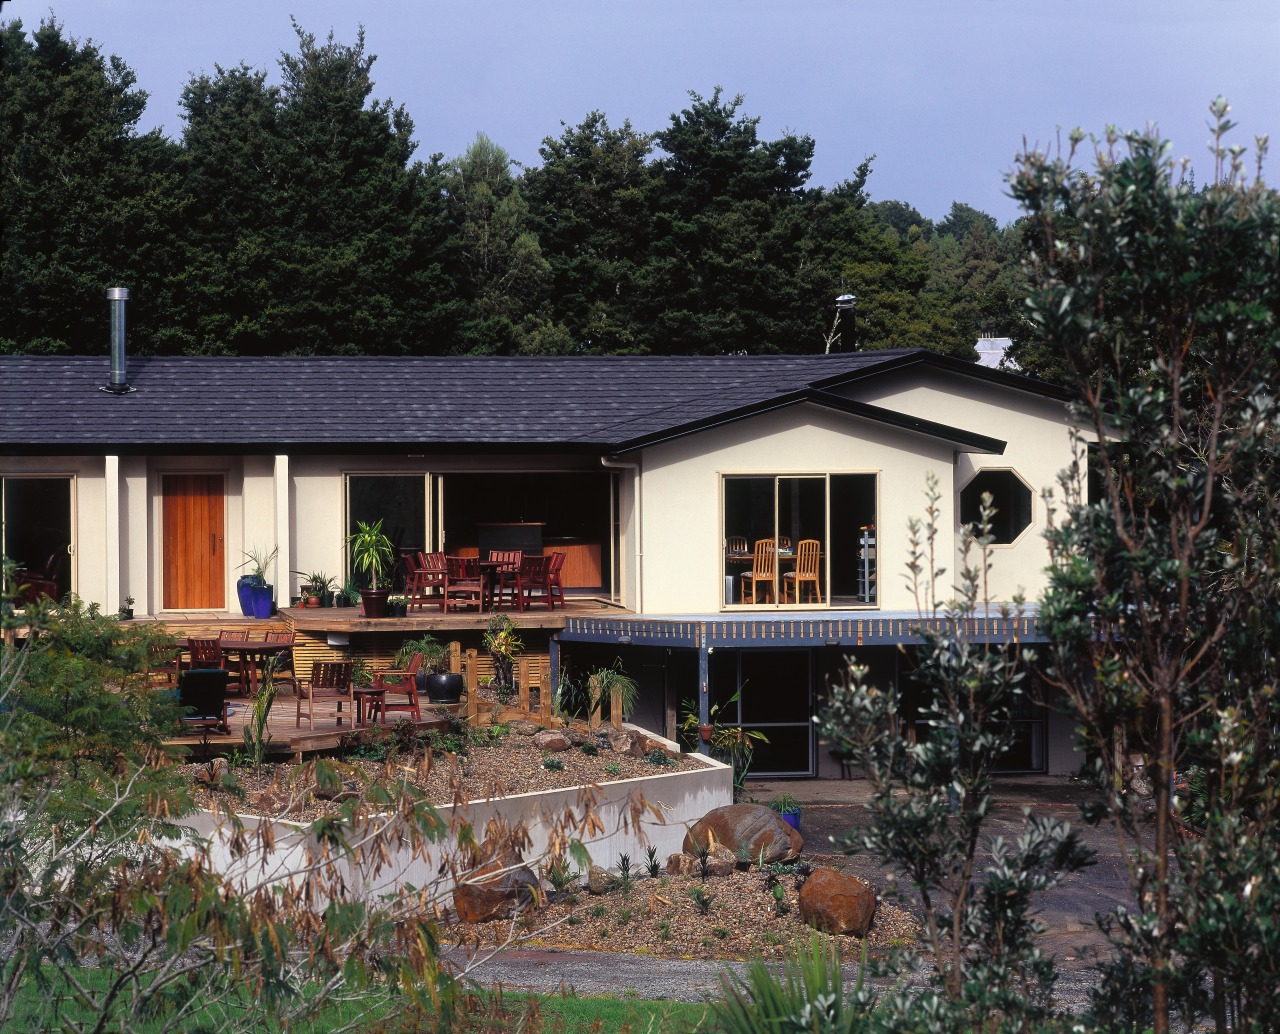 Contemporary country house with black shingle roofing, cream cottage, facade, home, house, landscape, outdoor structure, property, real estate, roof, siding, black